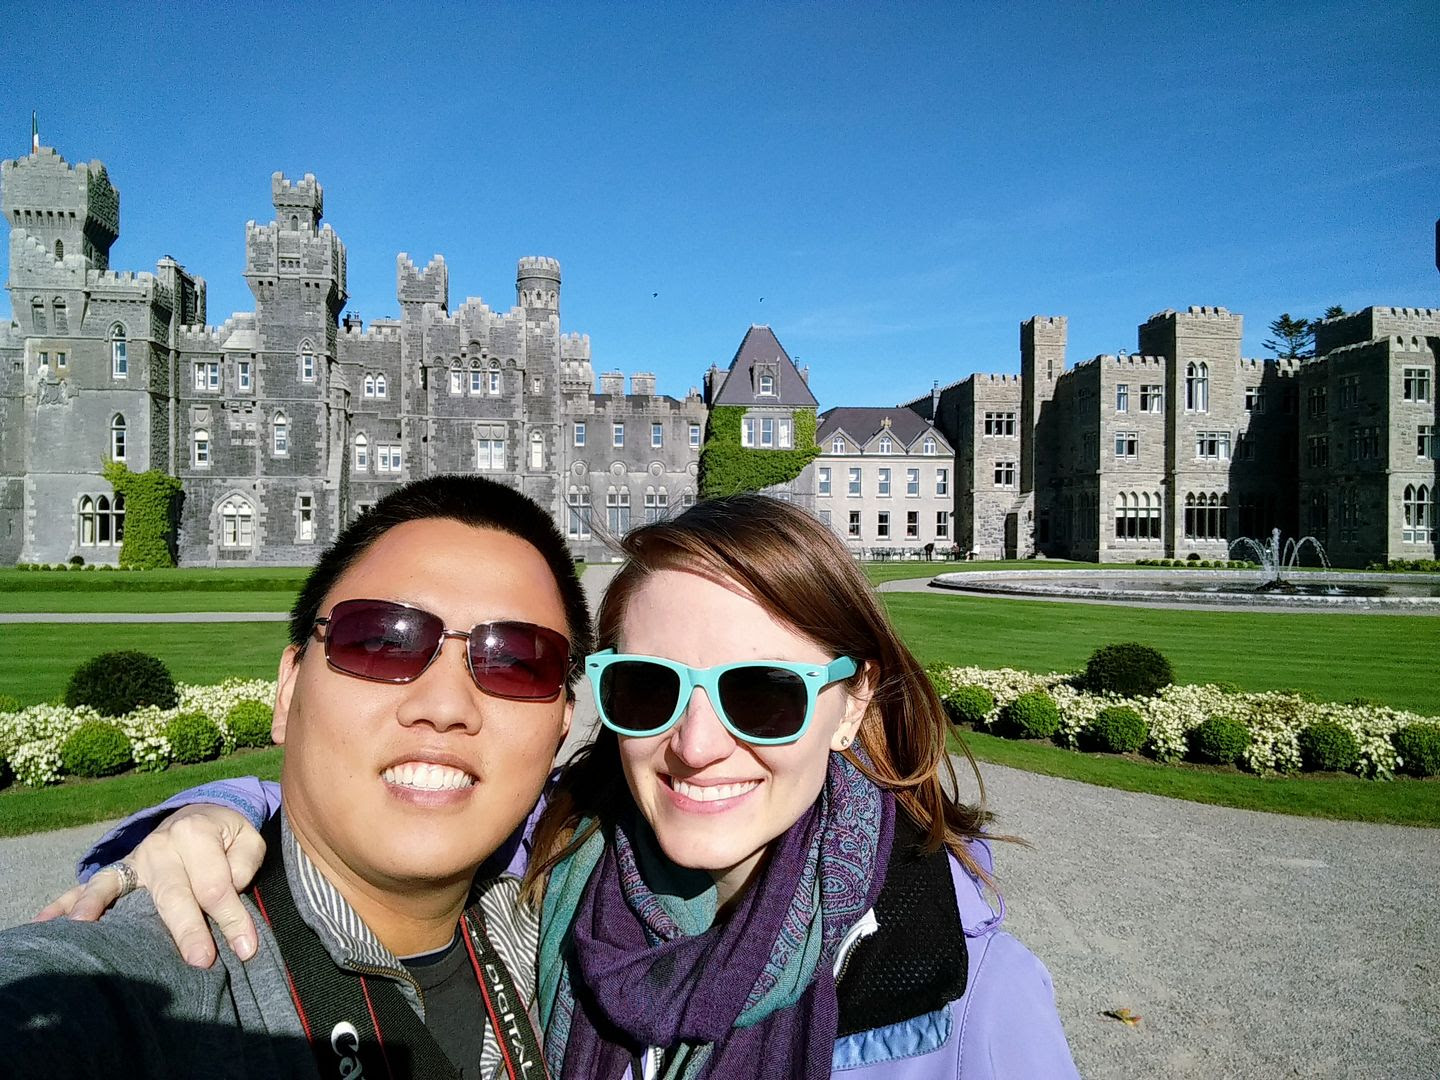 Ashford Castle, Ireland photo IMG_20151013_125732_zpsacl3to3l.jpg